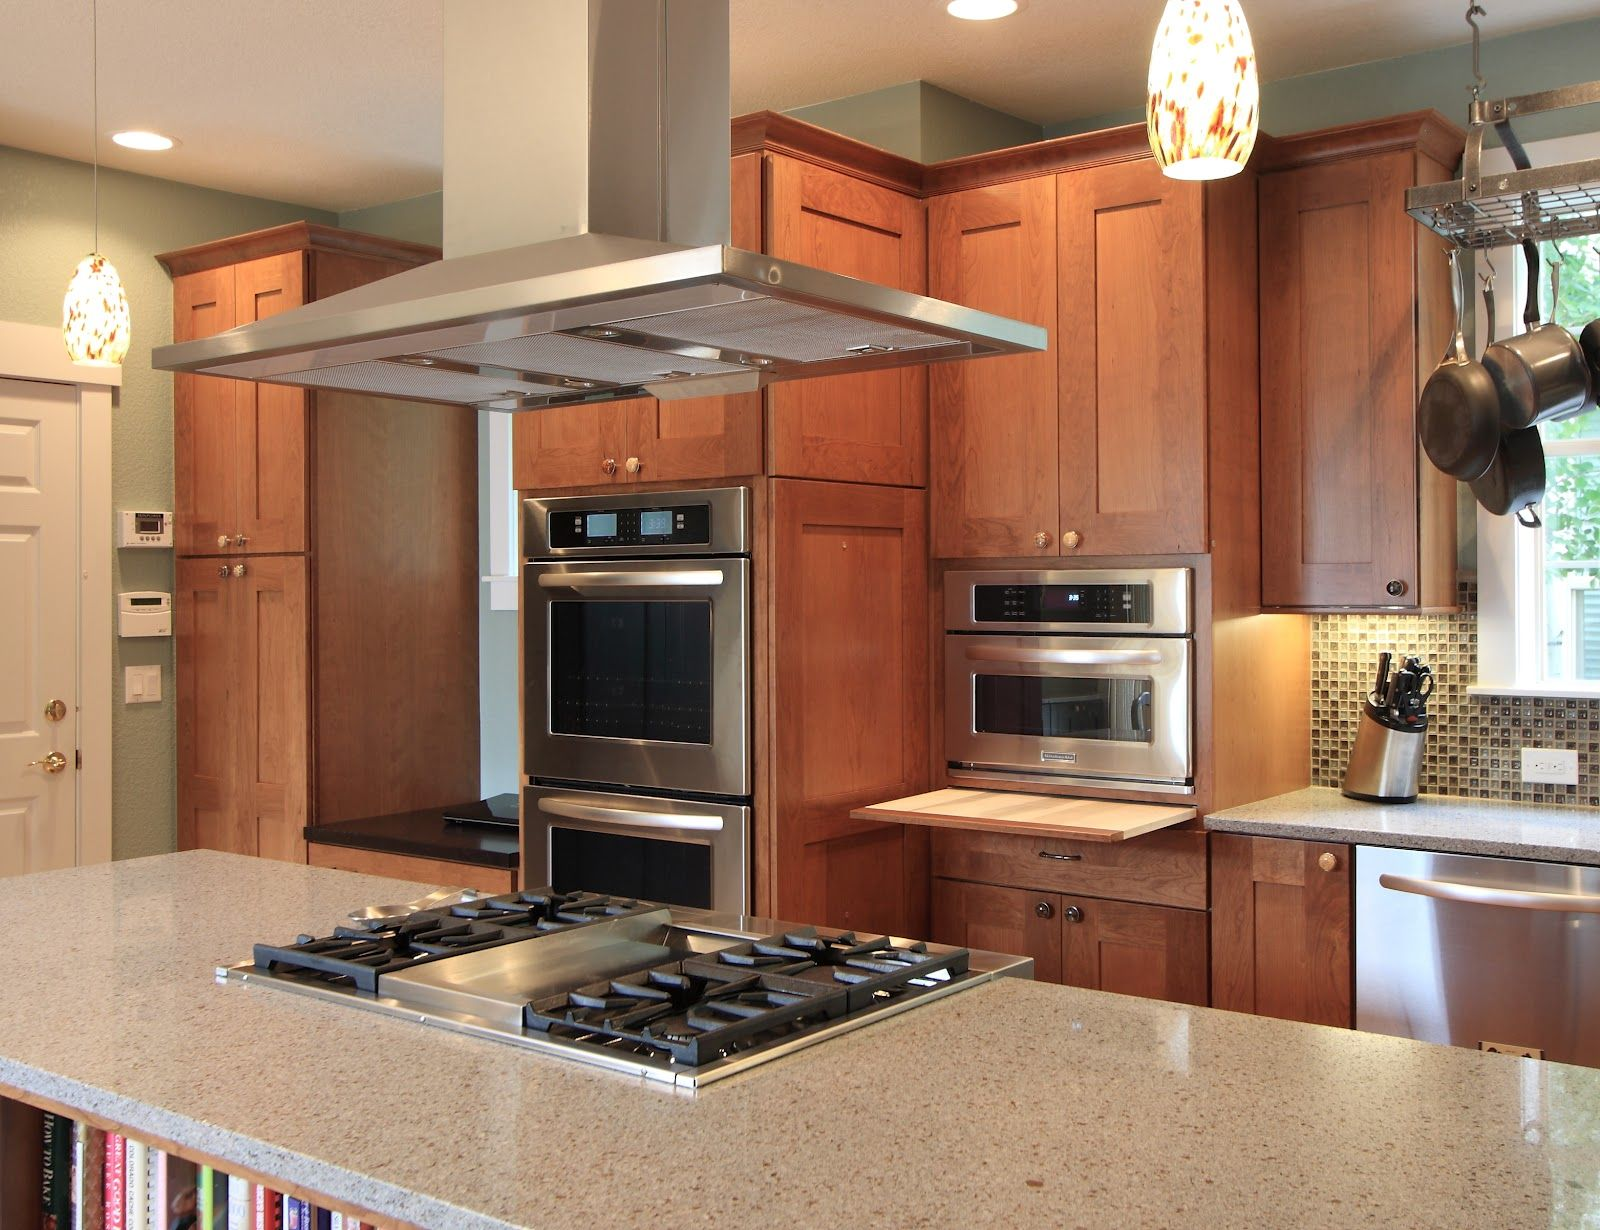 Modern Kitchen Island With Stove Island Cooktop  Island Cooktop And Oven Cabinets Beyond  My